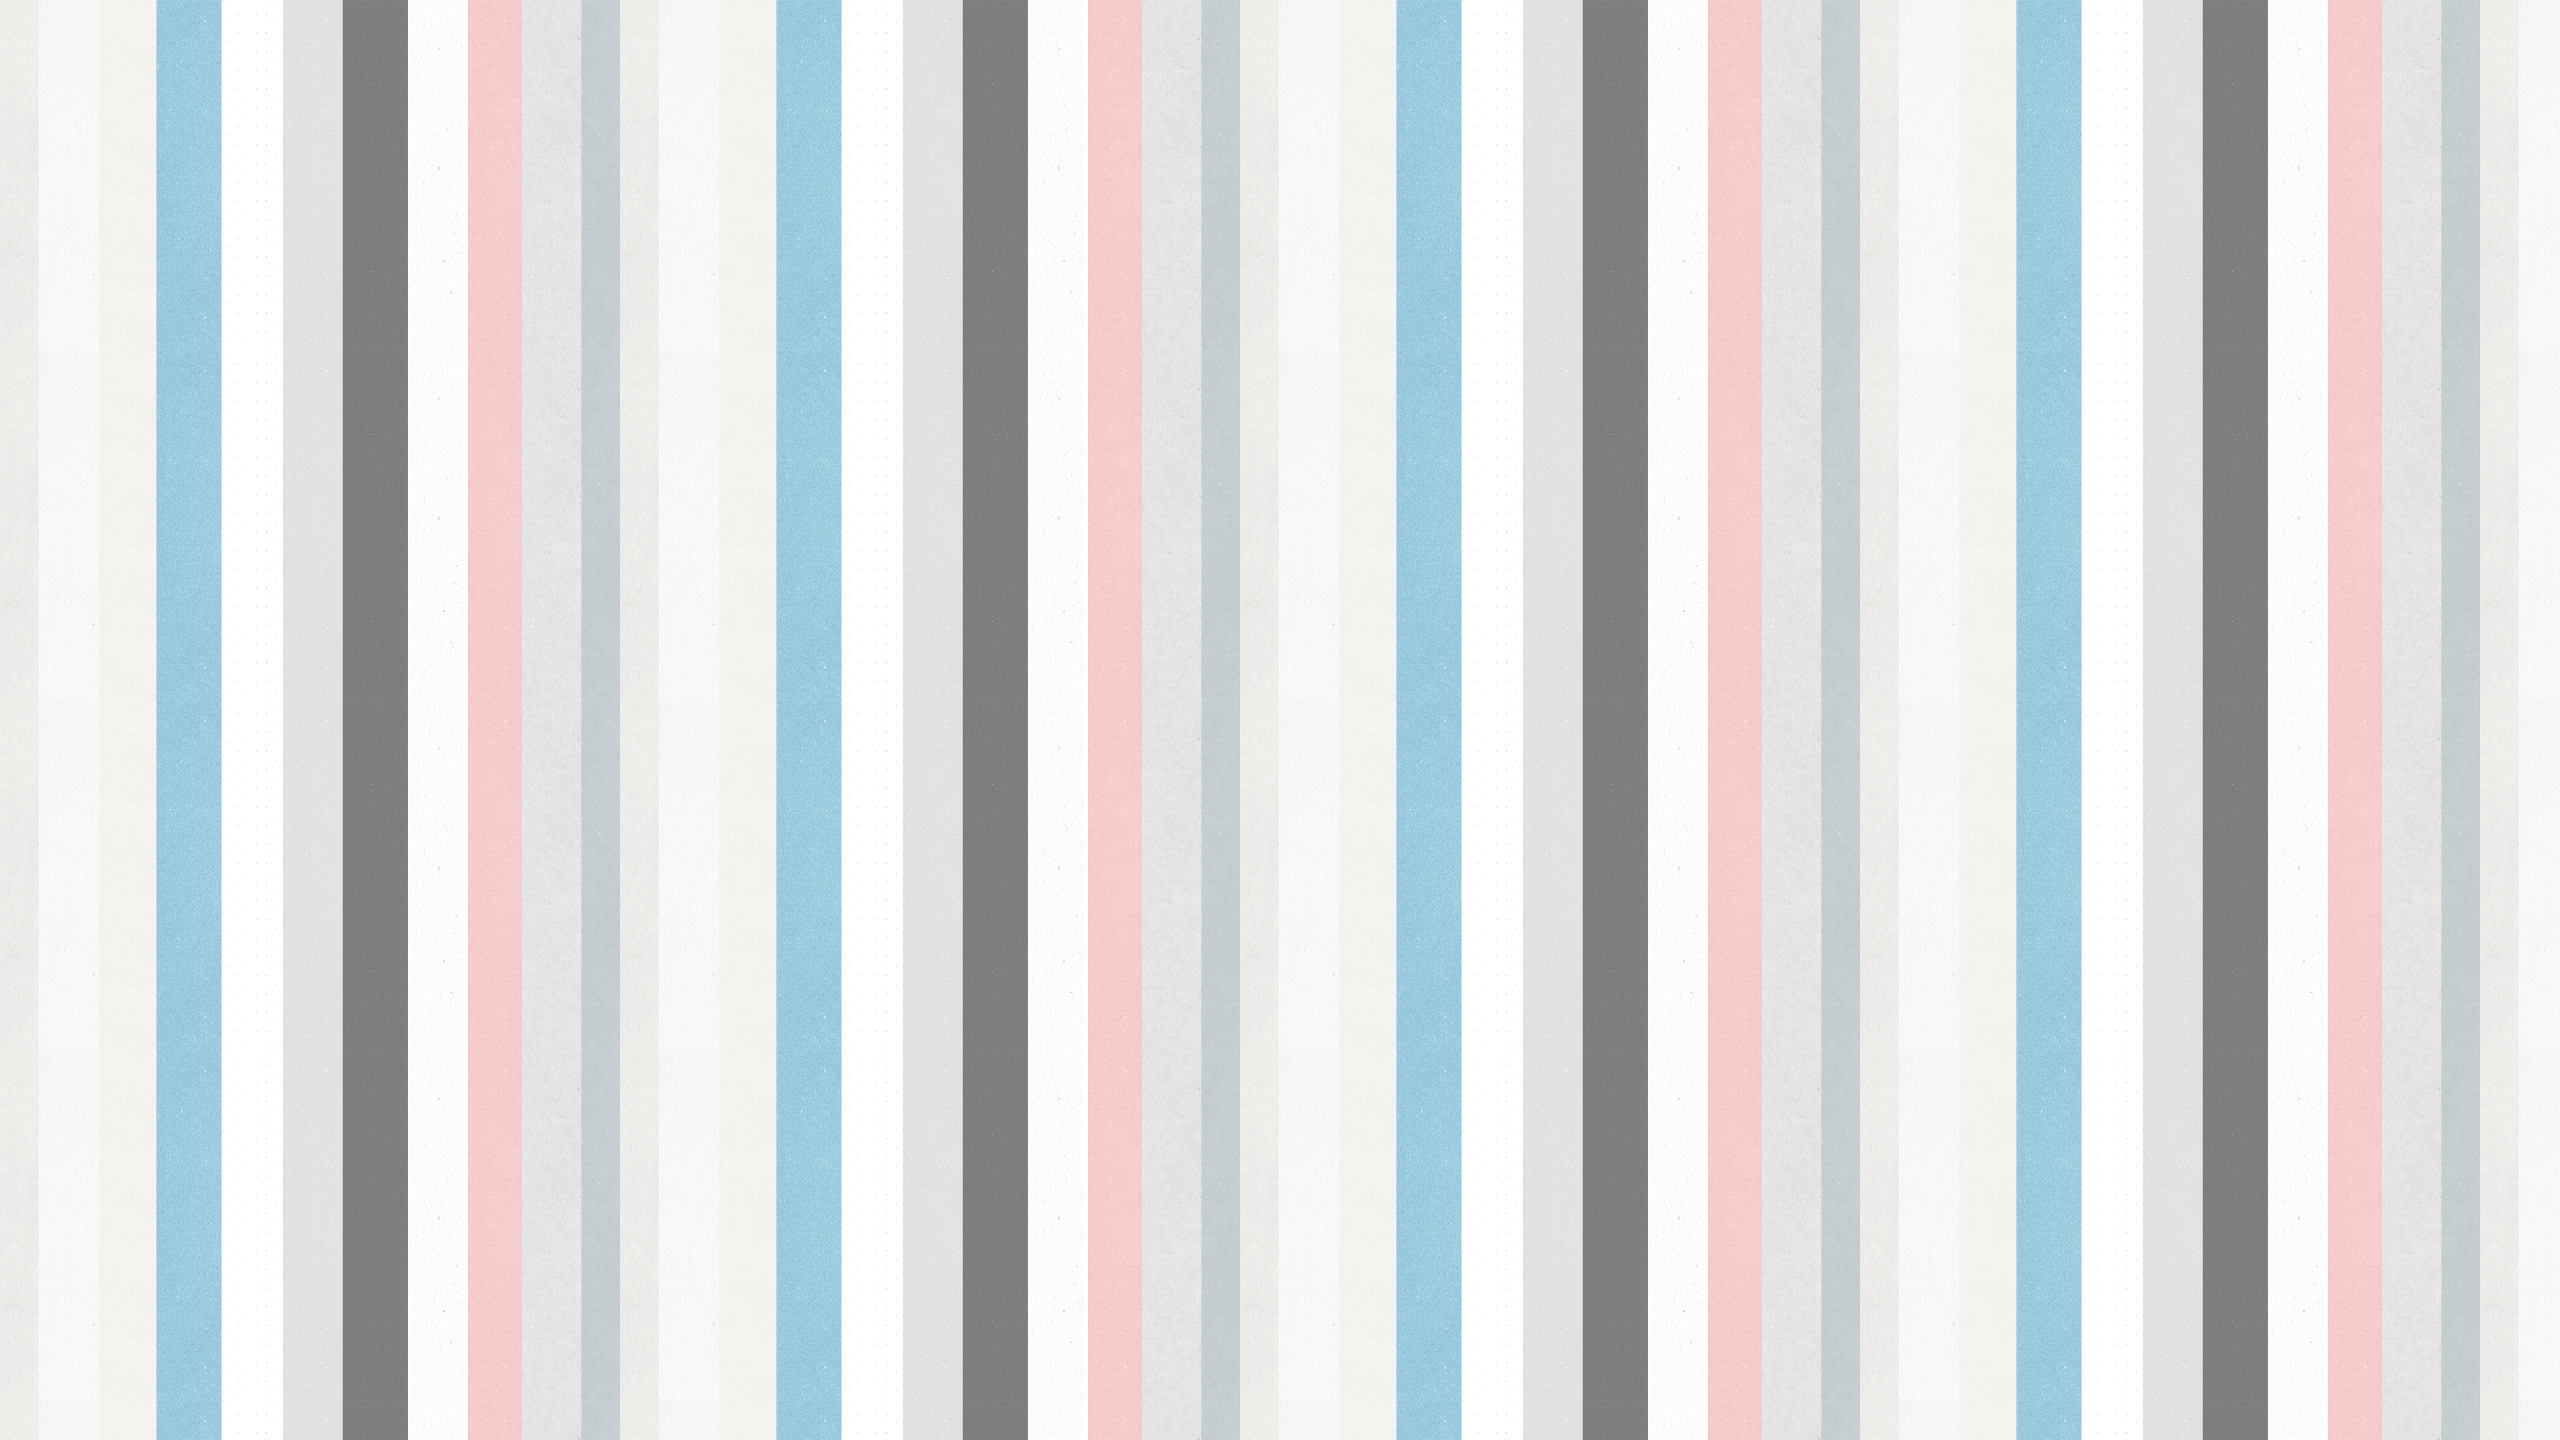 pastel desktop wallpaper - photo #43